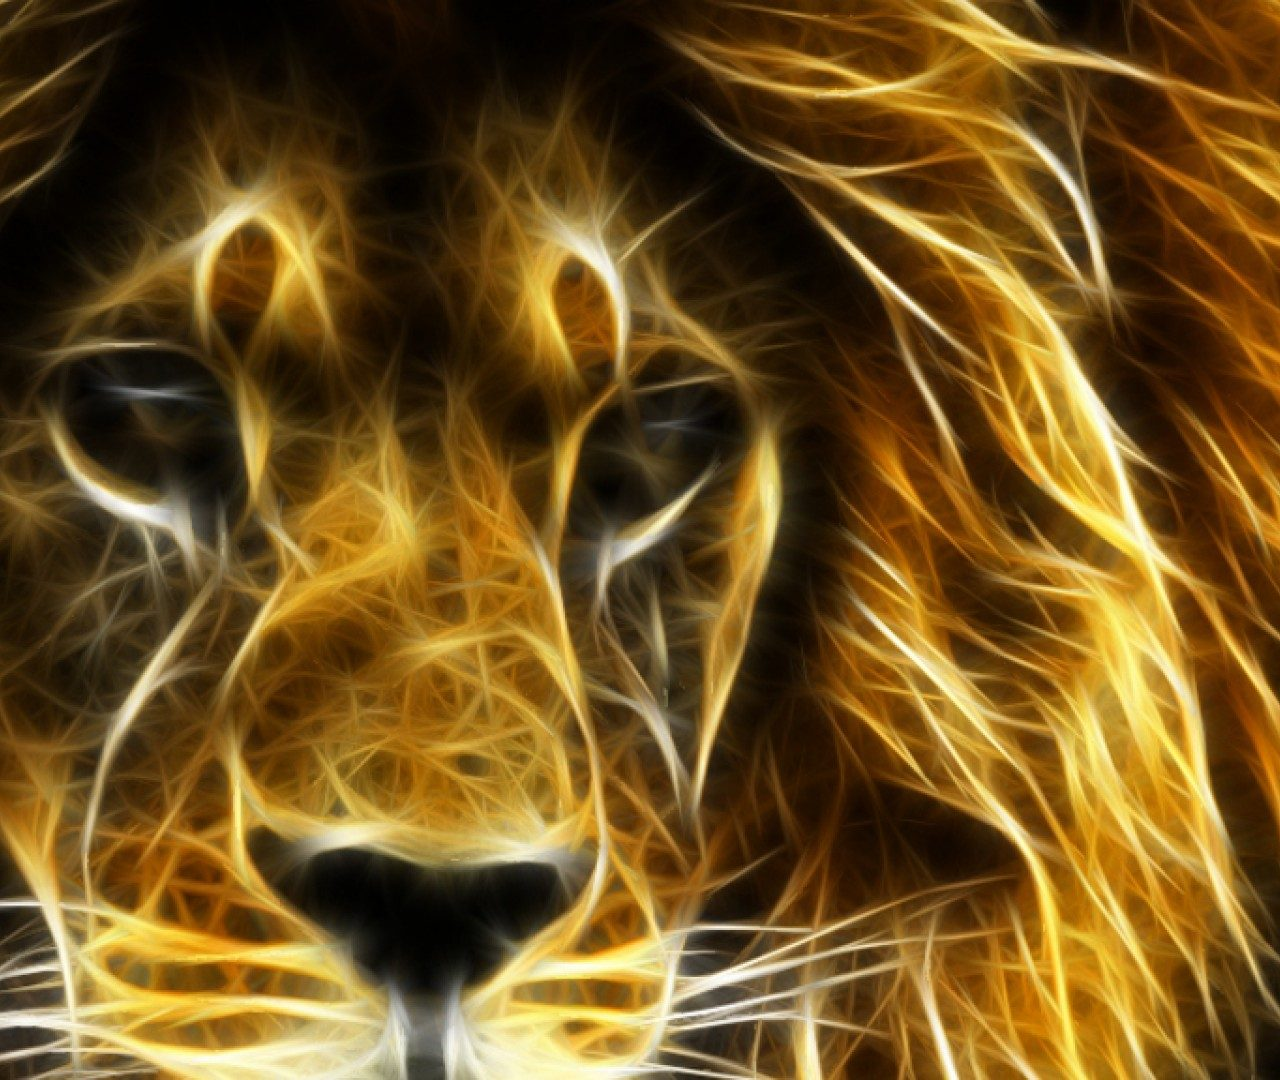 Kawaii Wallpapers Cute Lion Wallpapers 1920 215 1080 Hd Wallpapers Hd Backgrounds